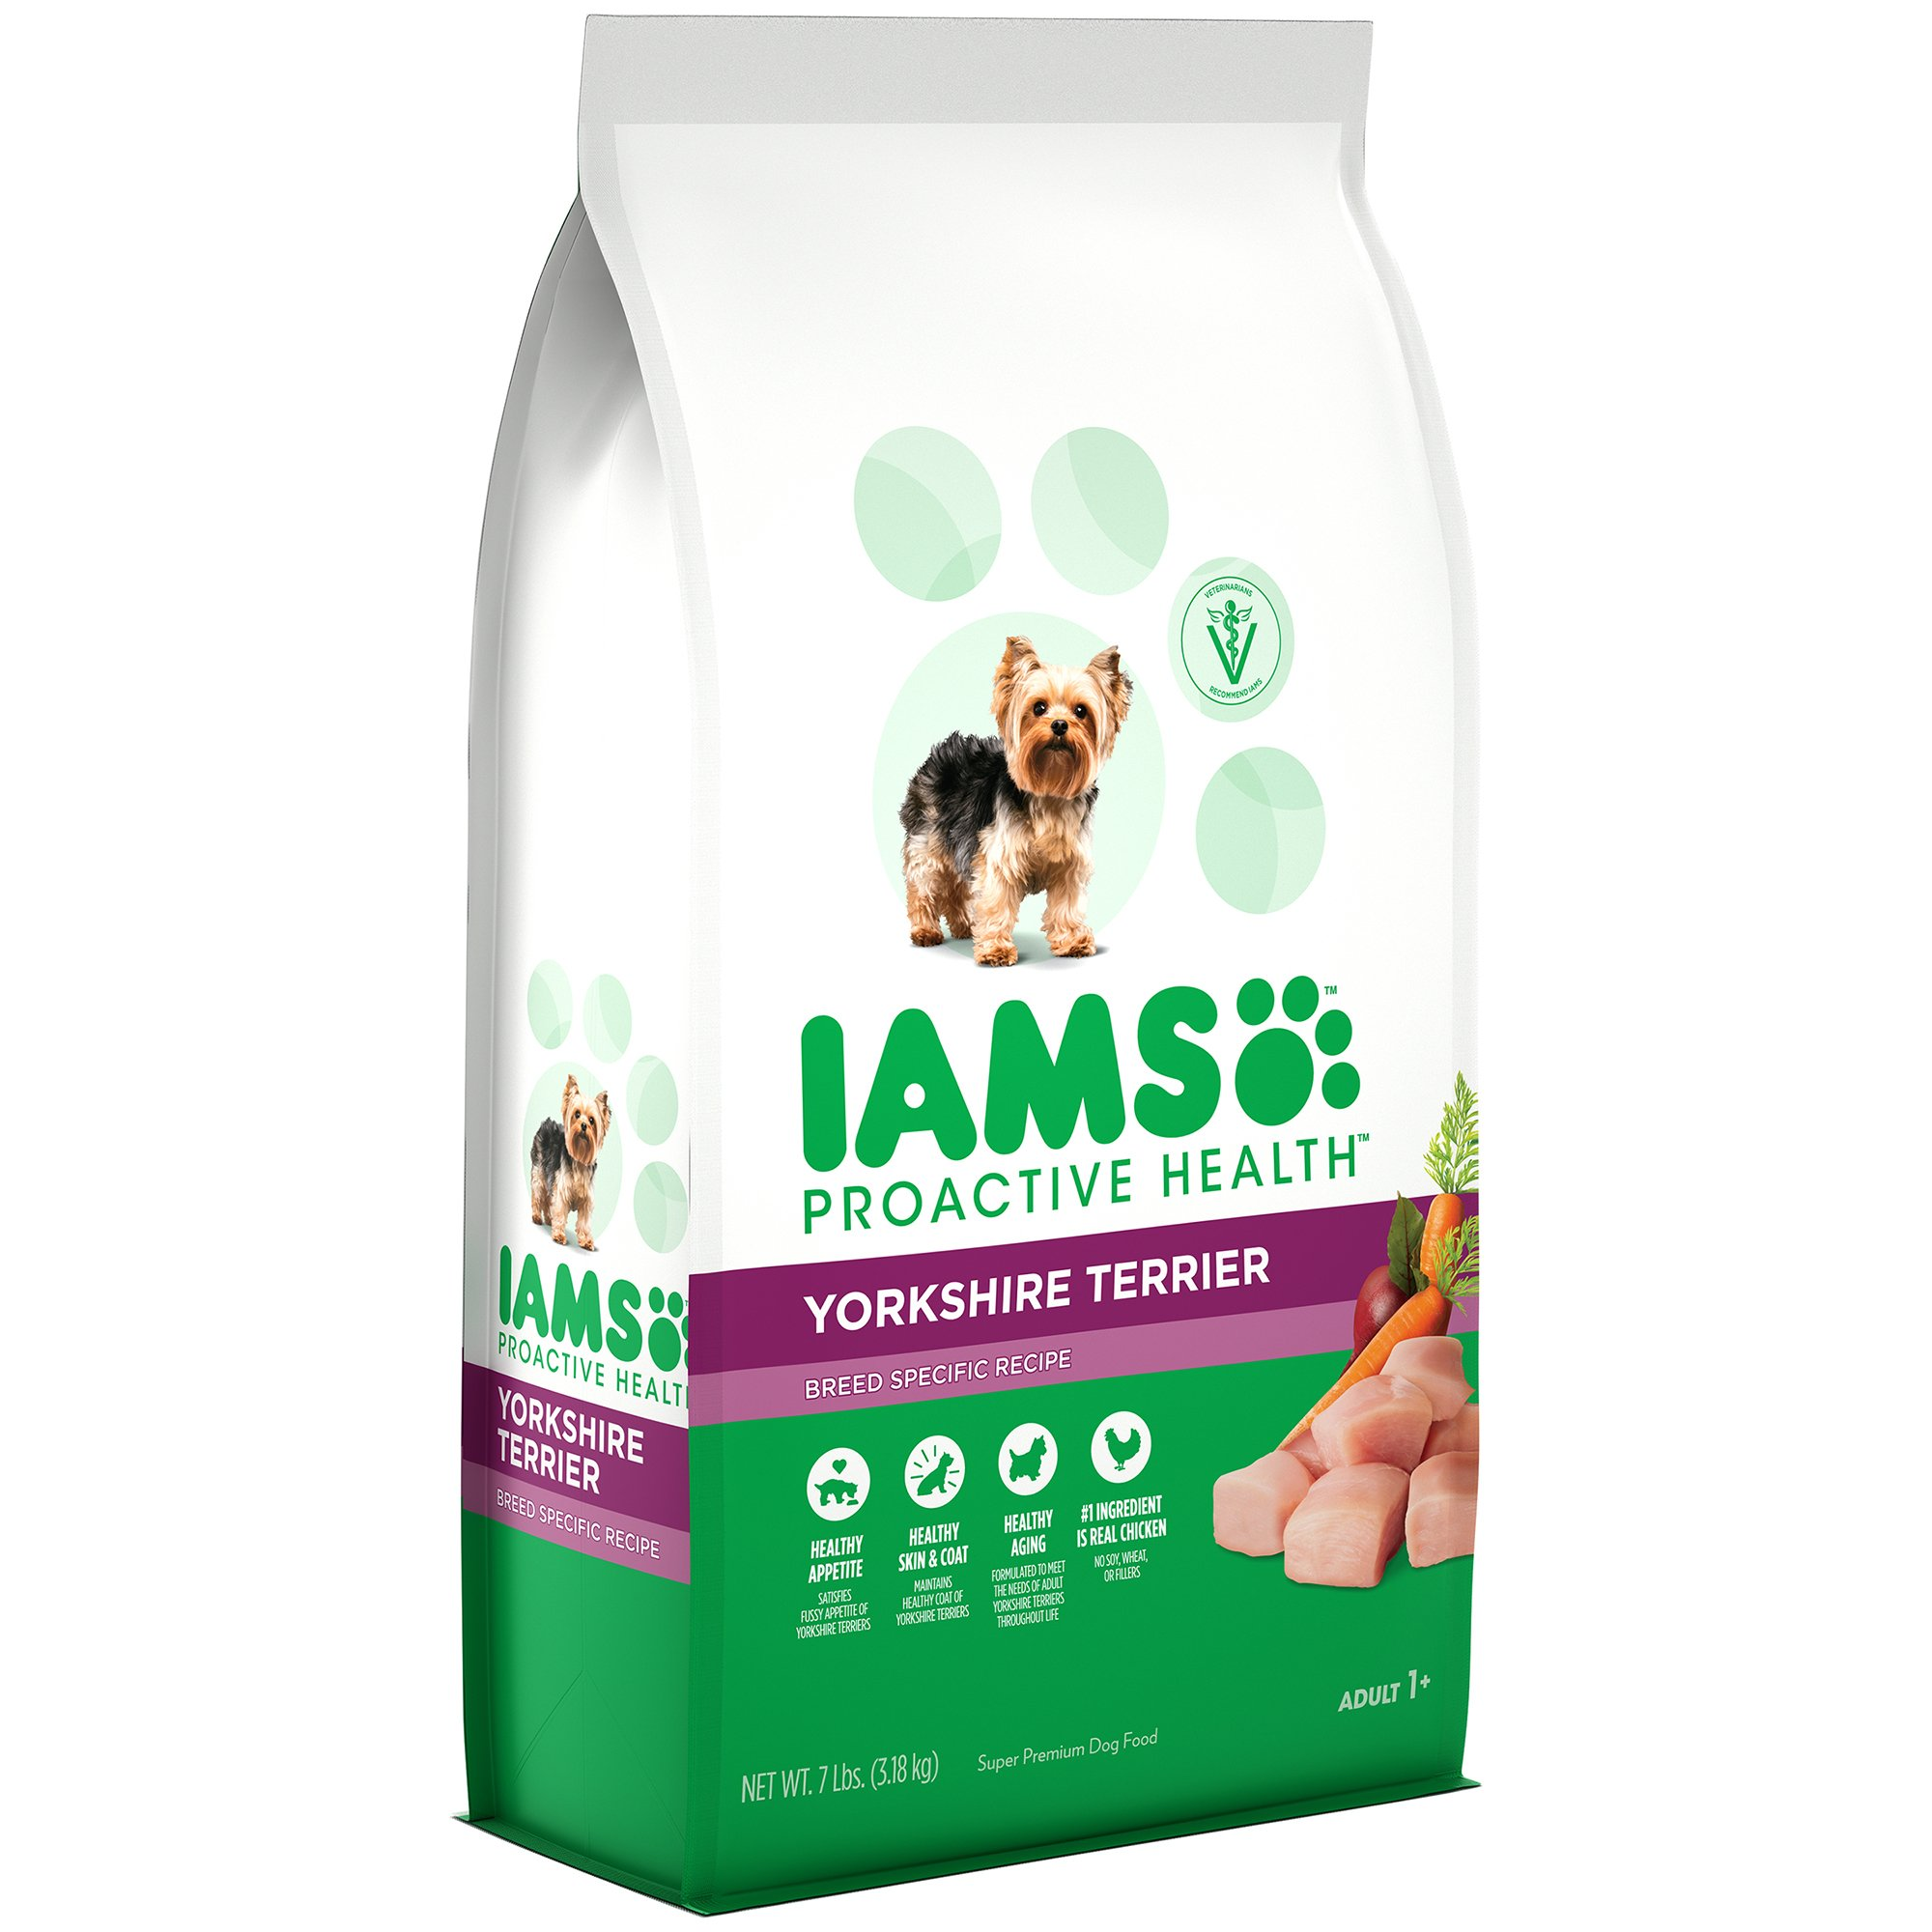 Iams Proactive Health Adult Yorkshire Terrier Dry Dog Food, Chicken Flavor, 7 Pound Bag